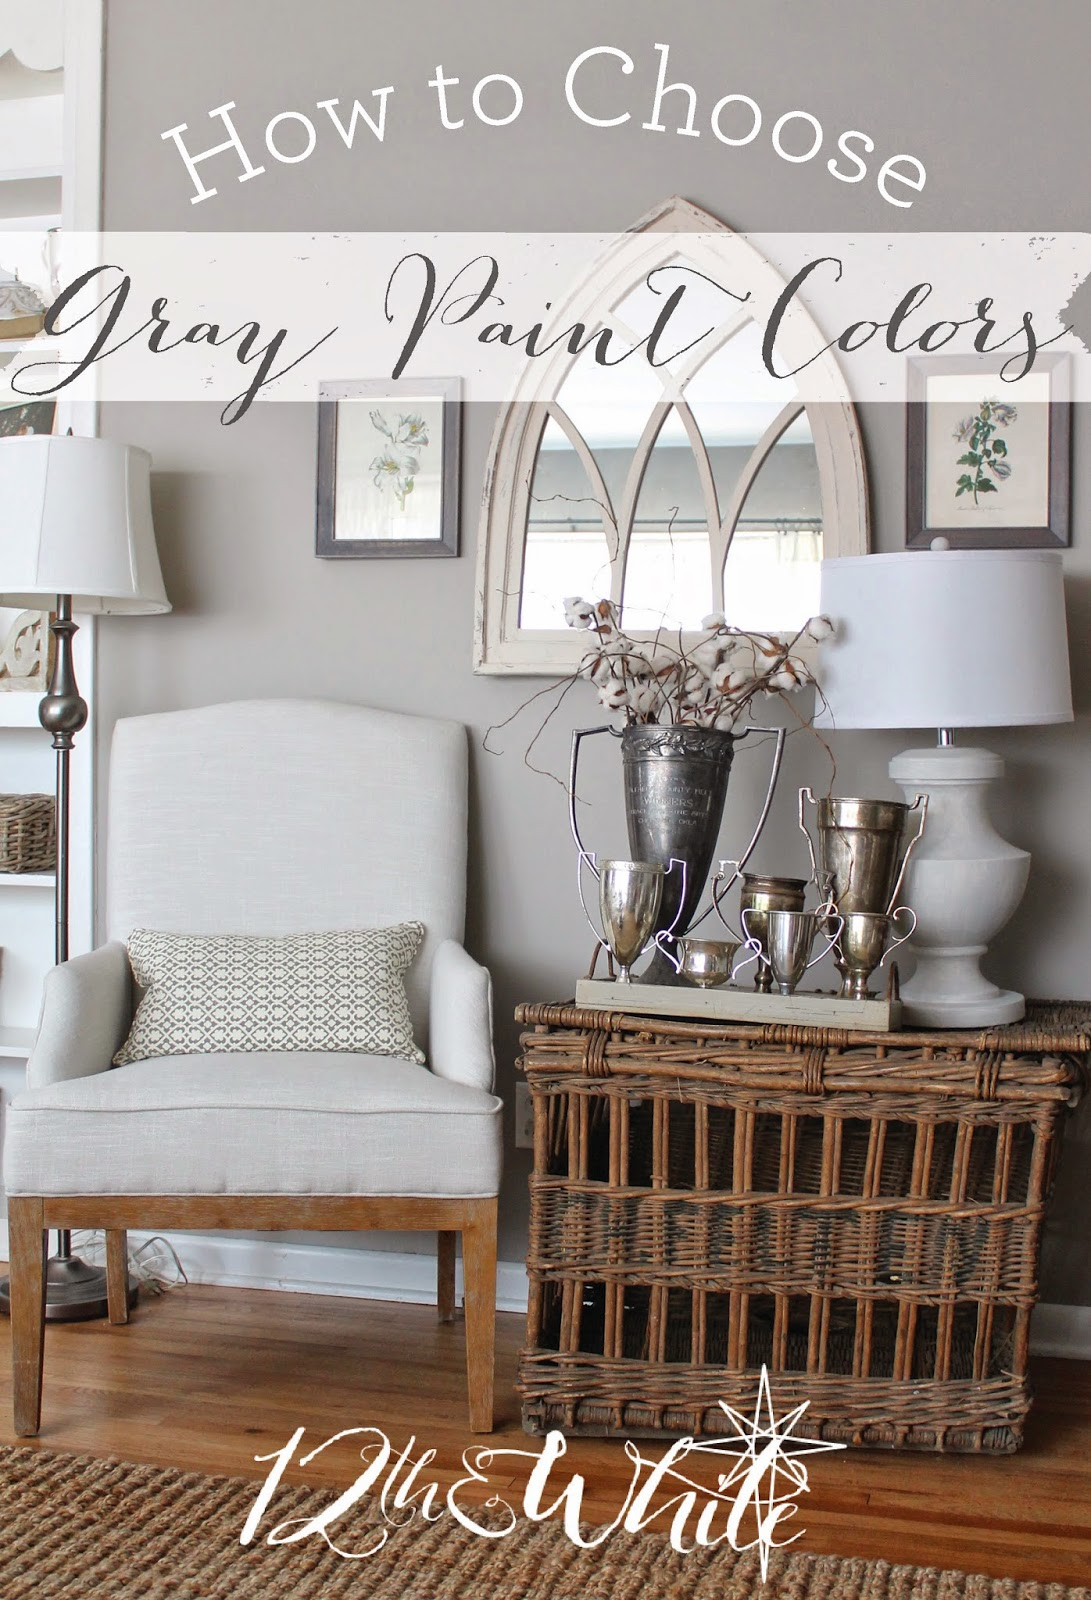 http://4.bp.blogspot.com/-r5CpTnrQuyI/VMhTorzWSjI/AAAAAAAAIDA/S37DQH169_o/s1600/how-to-choose-gray-paint-colors.jpg